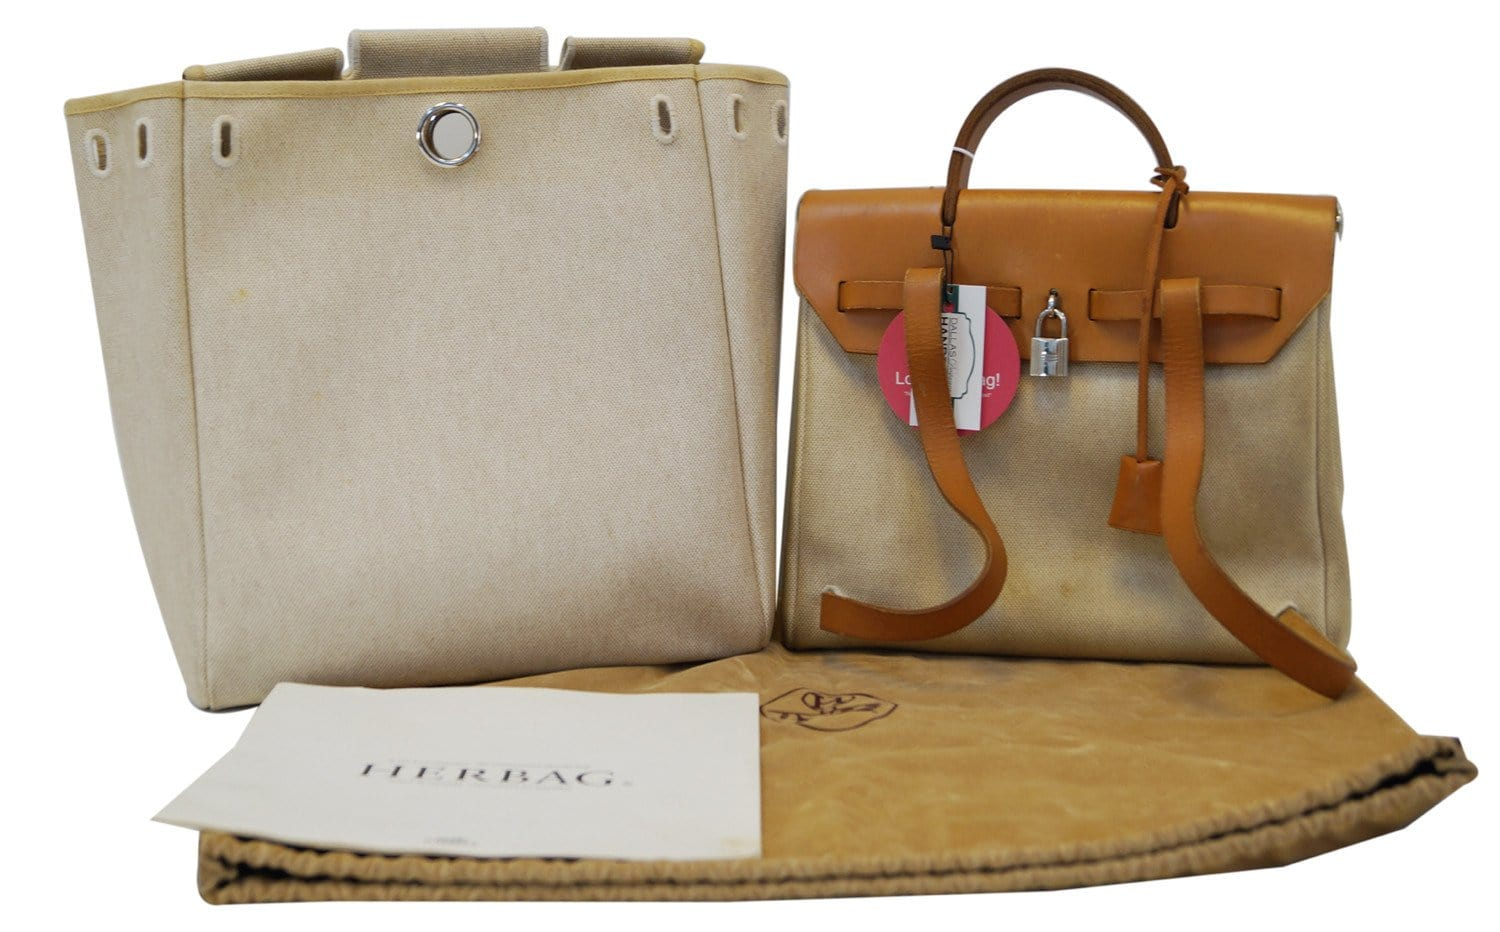 e0498196b24ed Hermes 30cm Natural Toile and Leather 2-in-1 Herbag PM Backpack Bag -